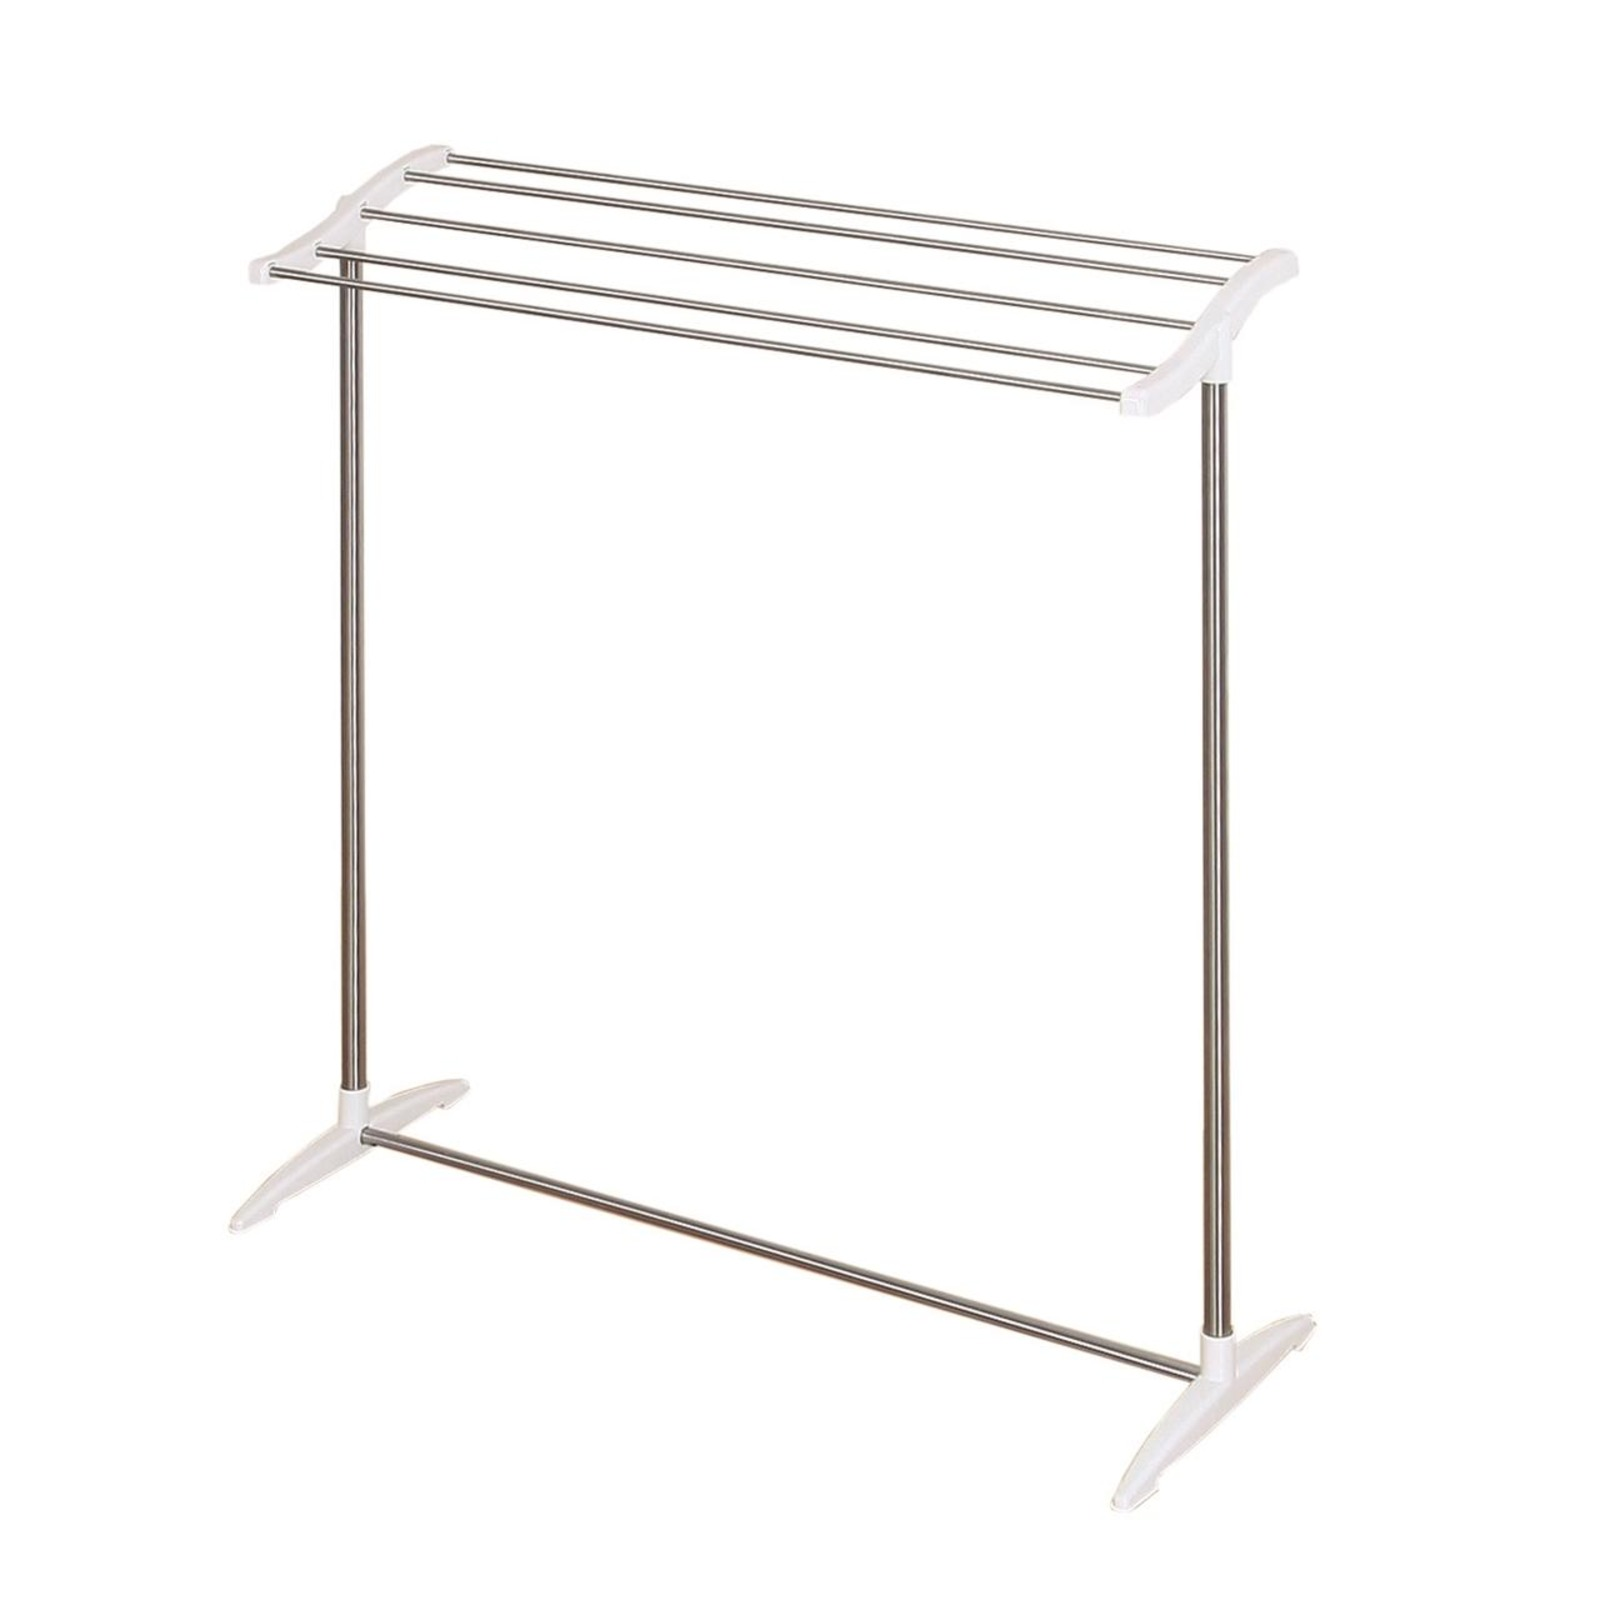 HEIAN SHINDO Small Towel Stand STH-20